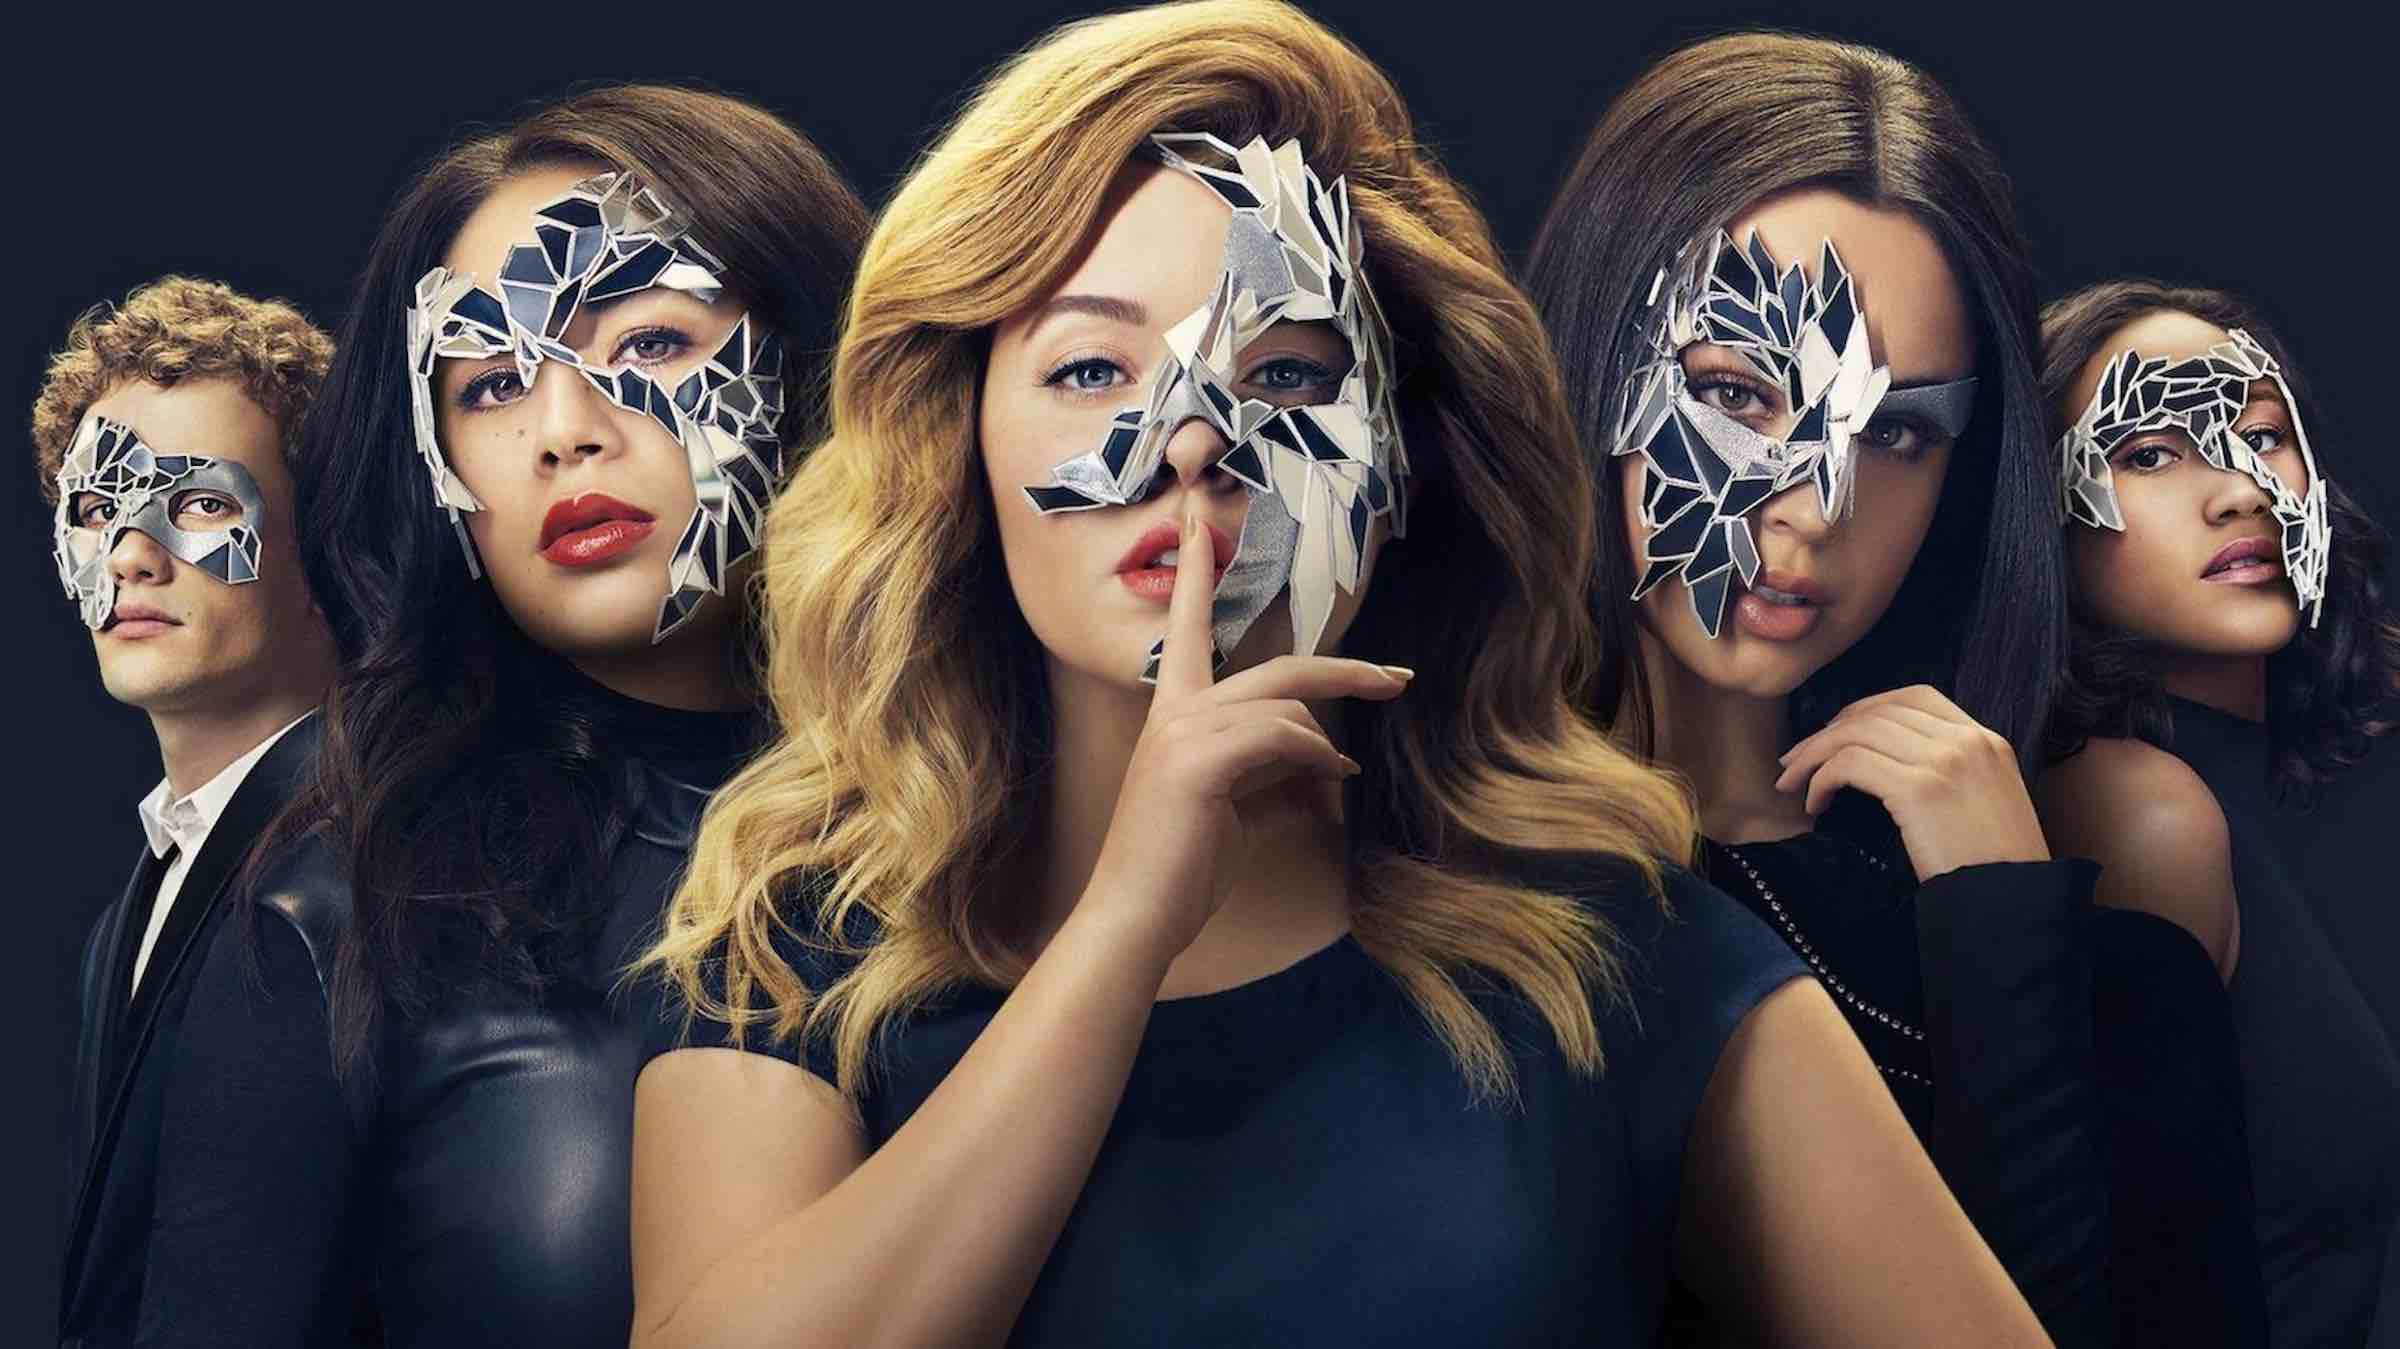 Bingewatch Award Finalists Why To Vote For Pll The Perfectionists